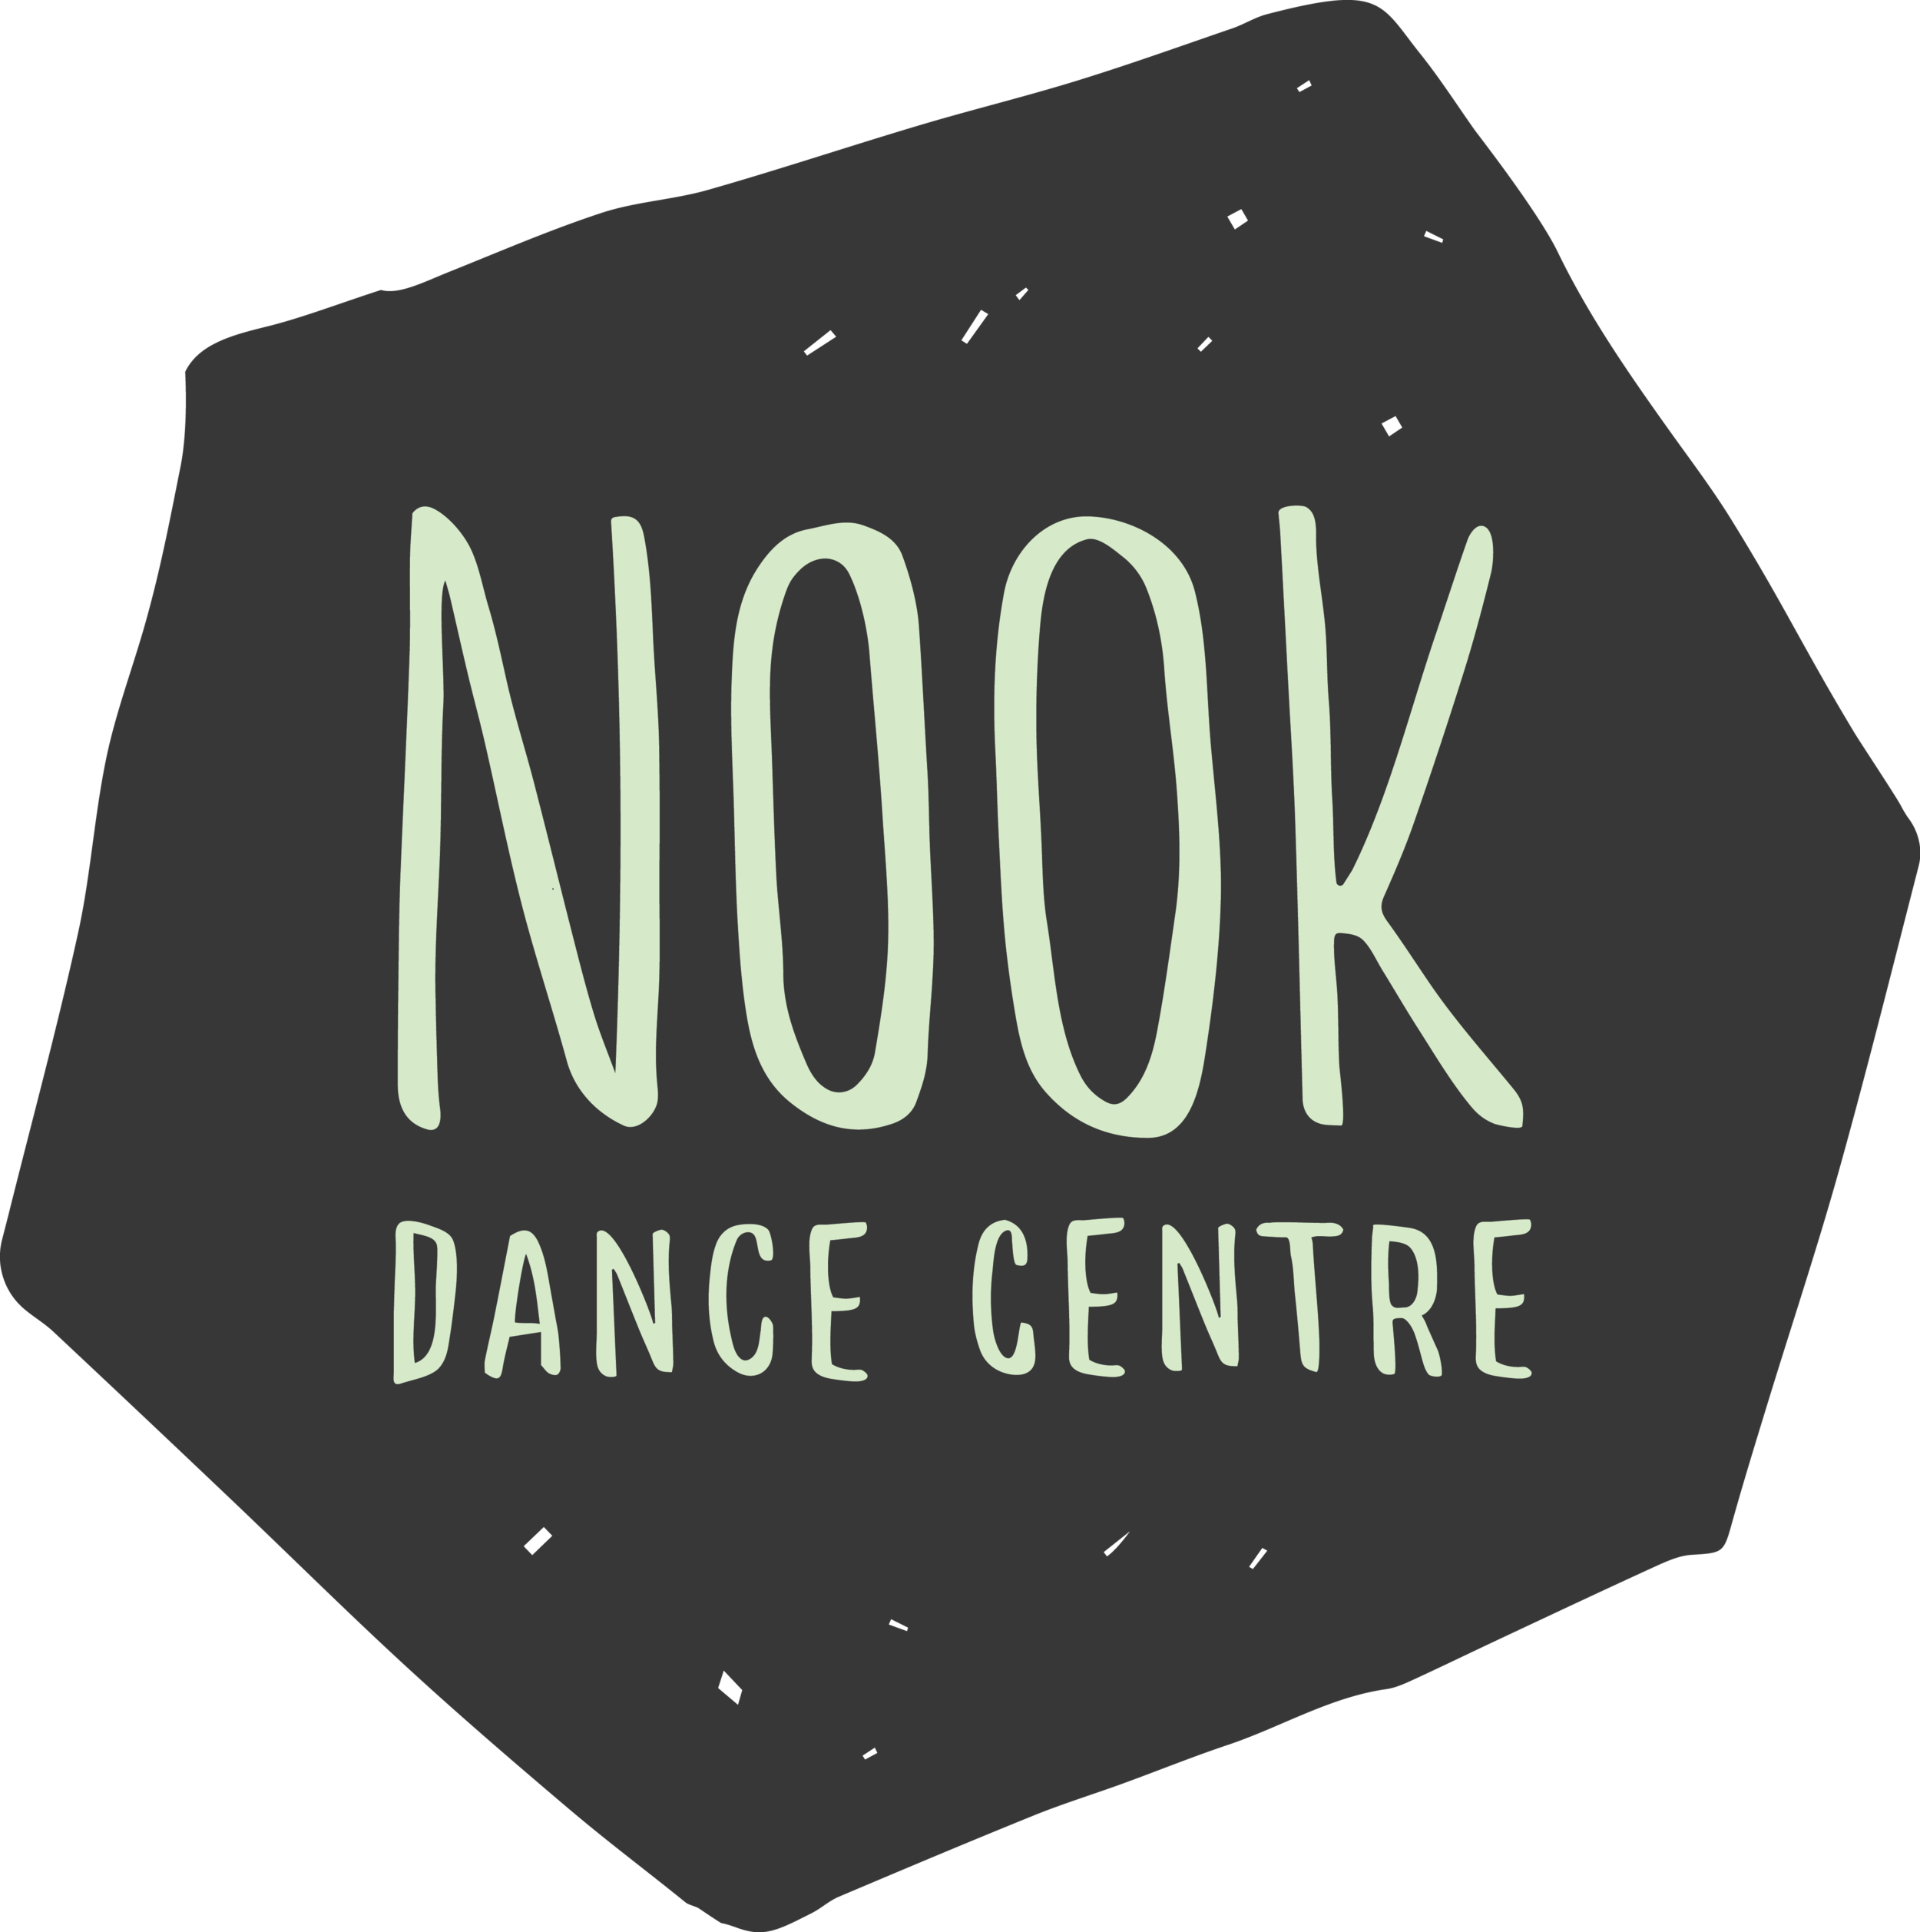 Nook Logo_Shape_Mstr Green and Charcoal.png